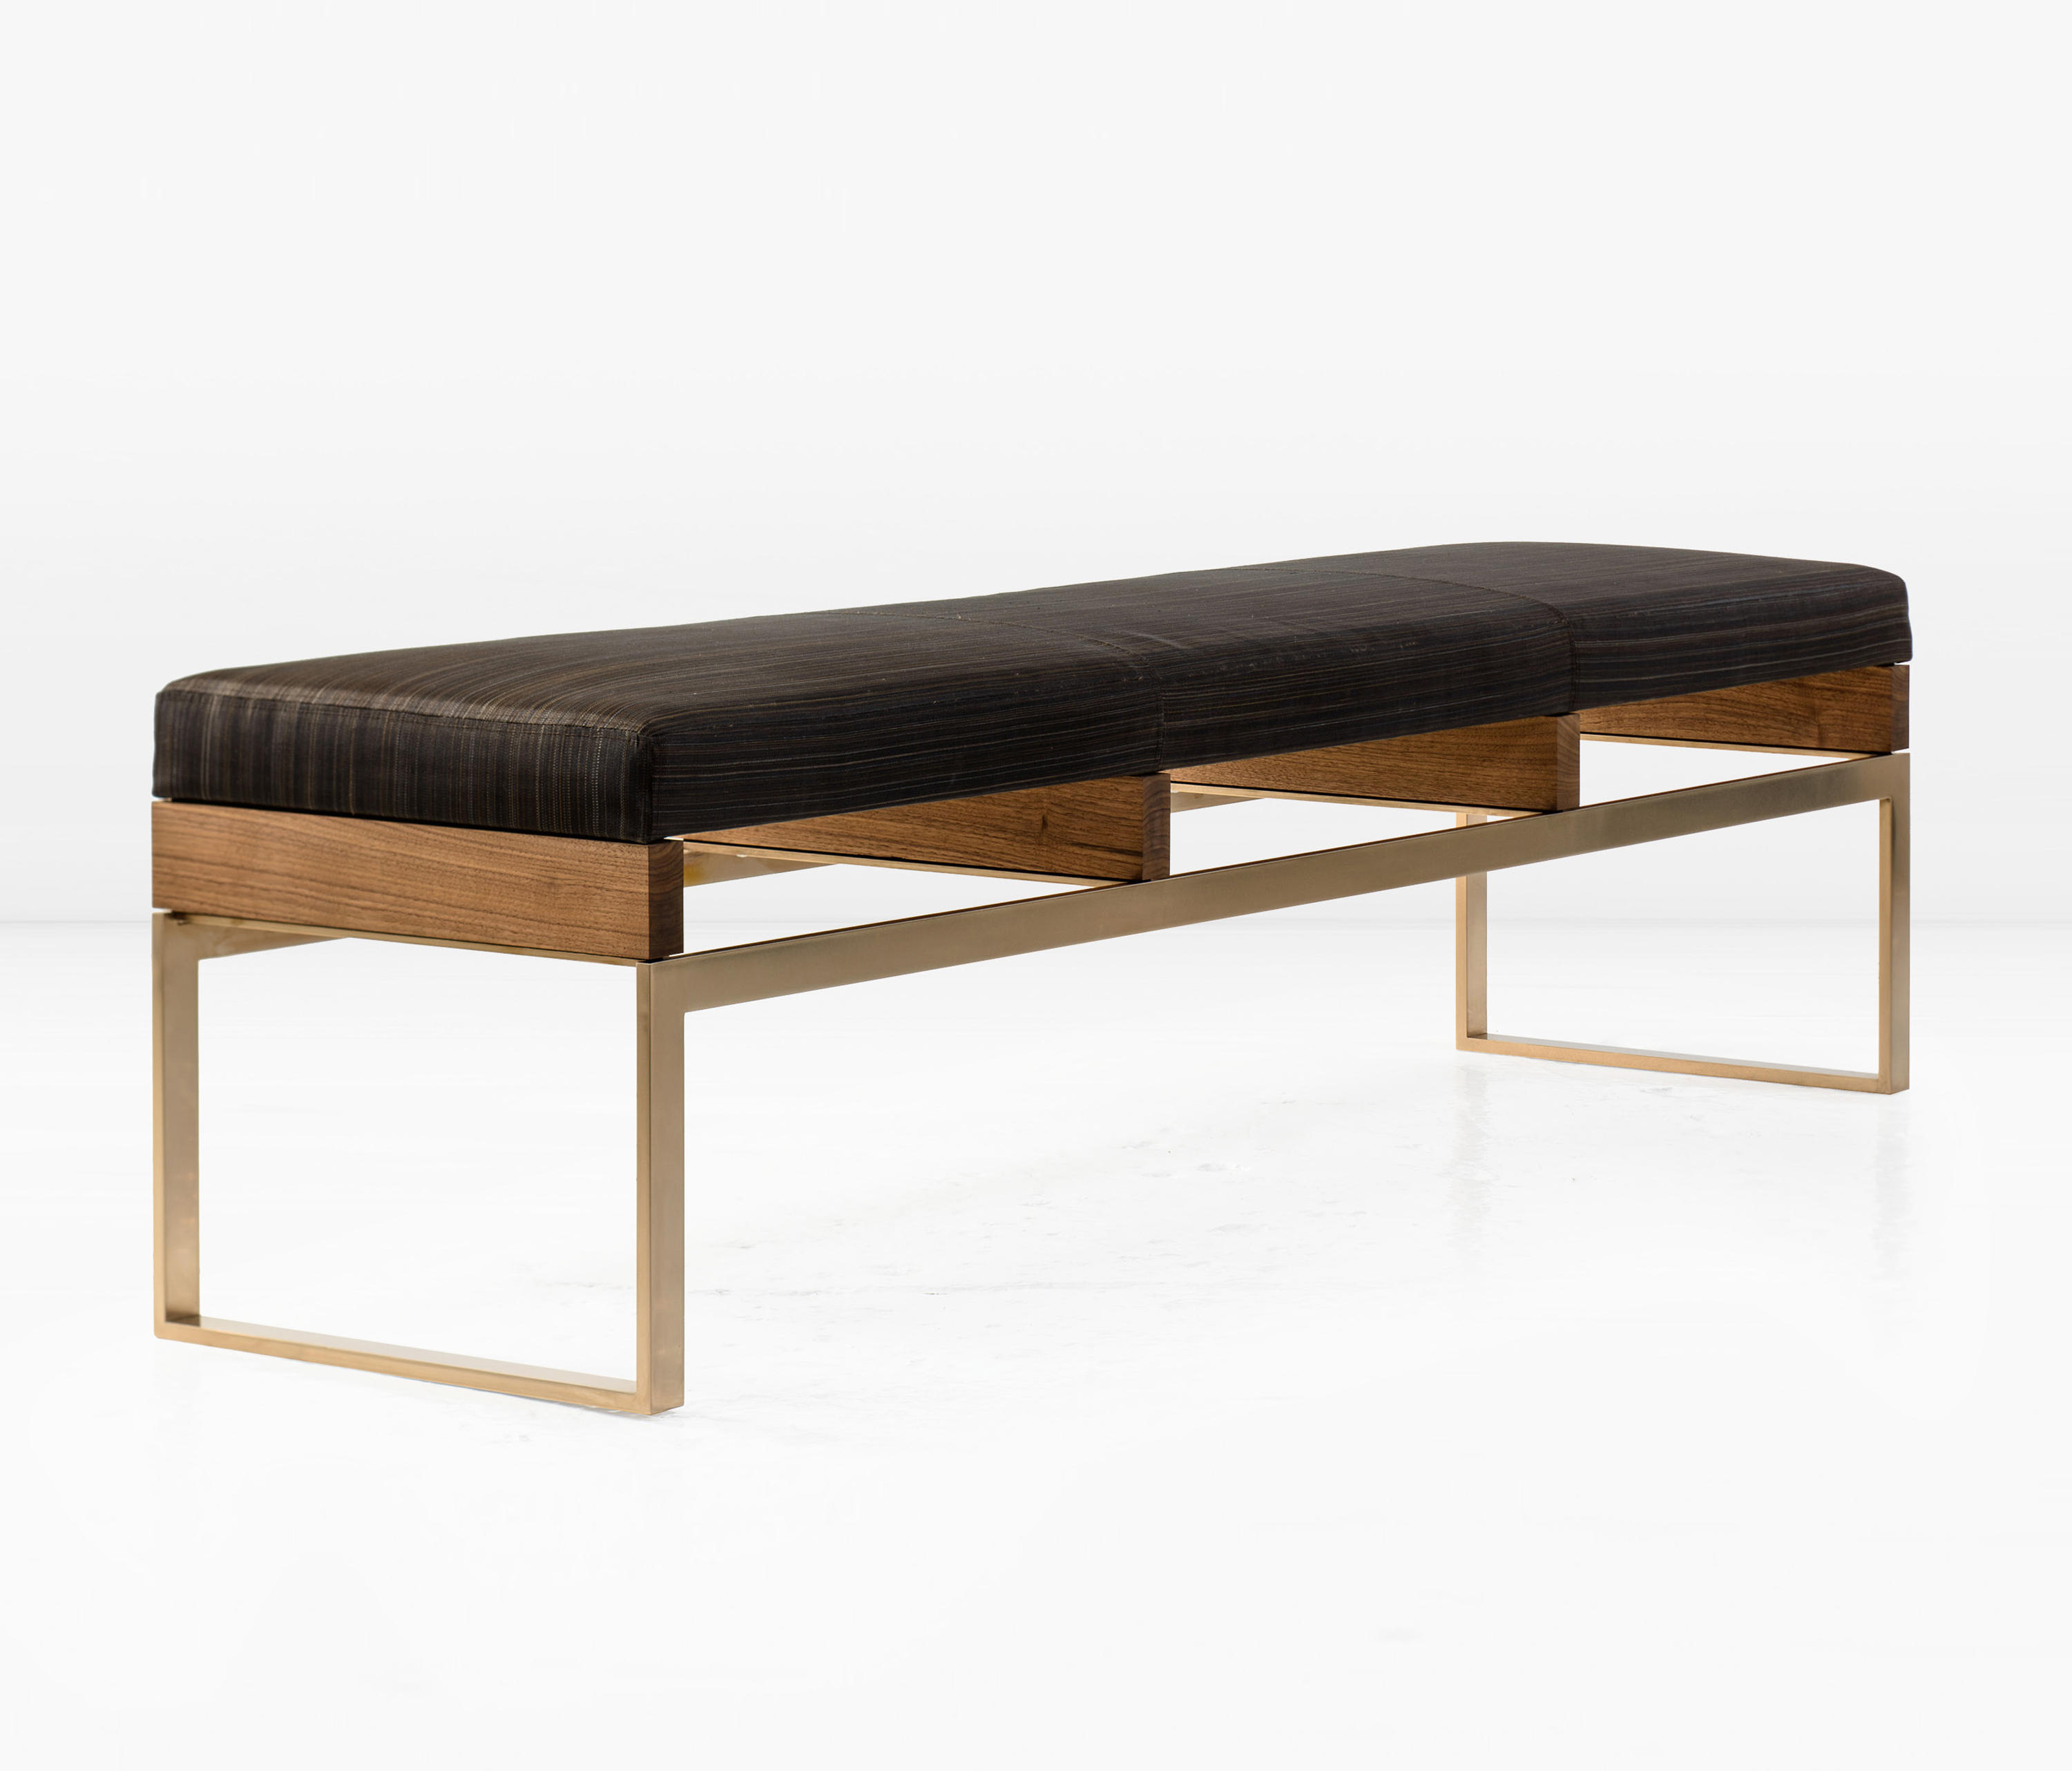 Maxim Bench Upholstered Benches From Khouri Guzman Bunce Lininger Architonic